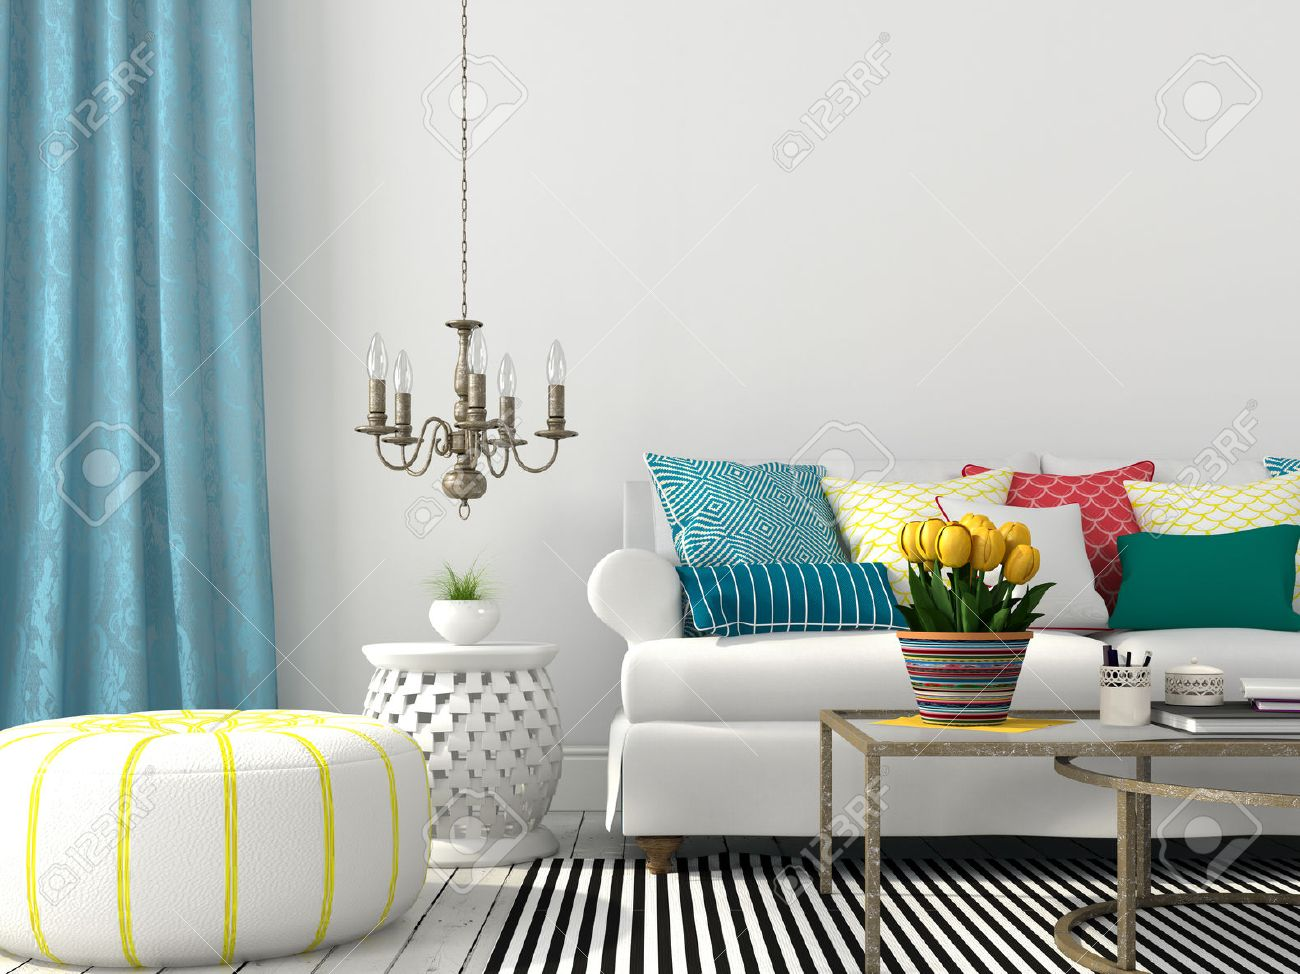 White Interior Of Living Room With Colorful Pillows And Blue